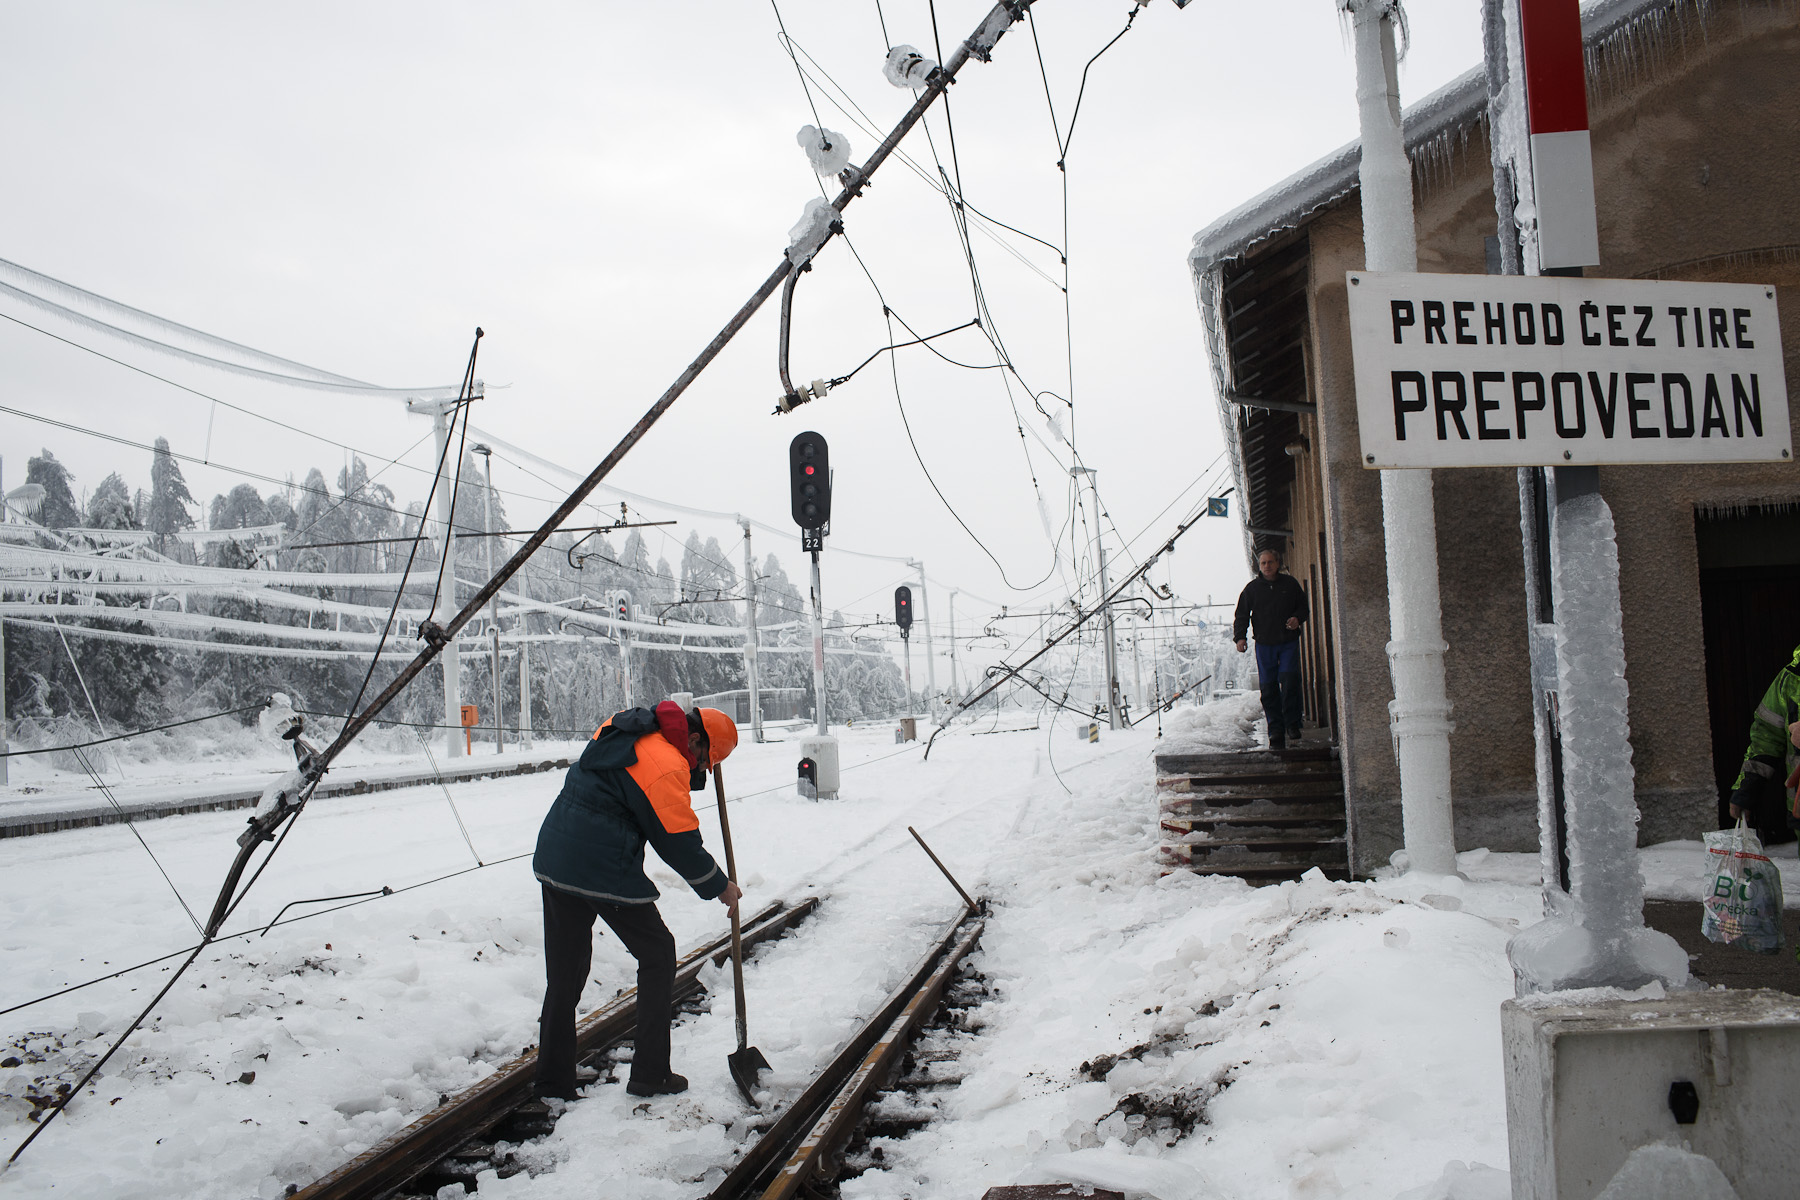 A worker clears ice from the railroad tracks on a heavy damaged train station in Postojna, Slovenia, February 5 2014.